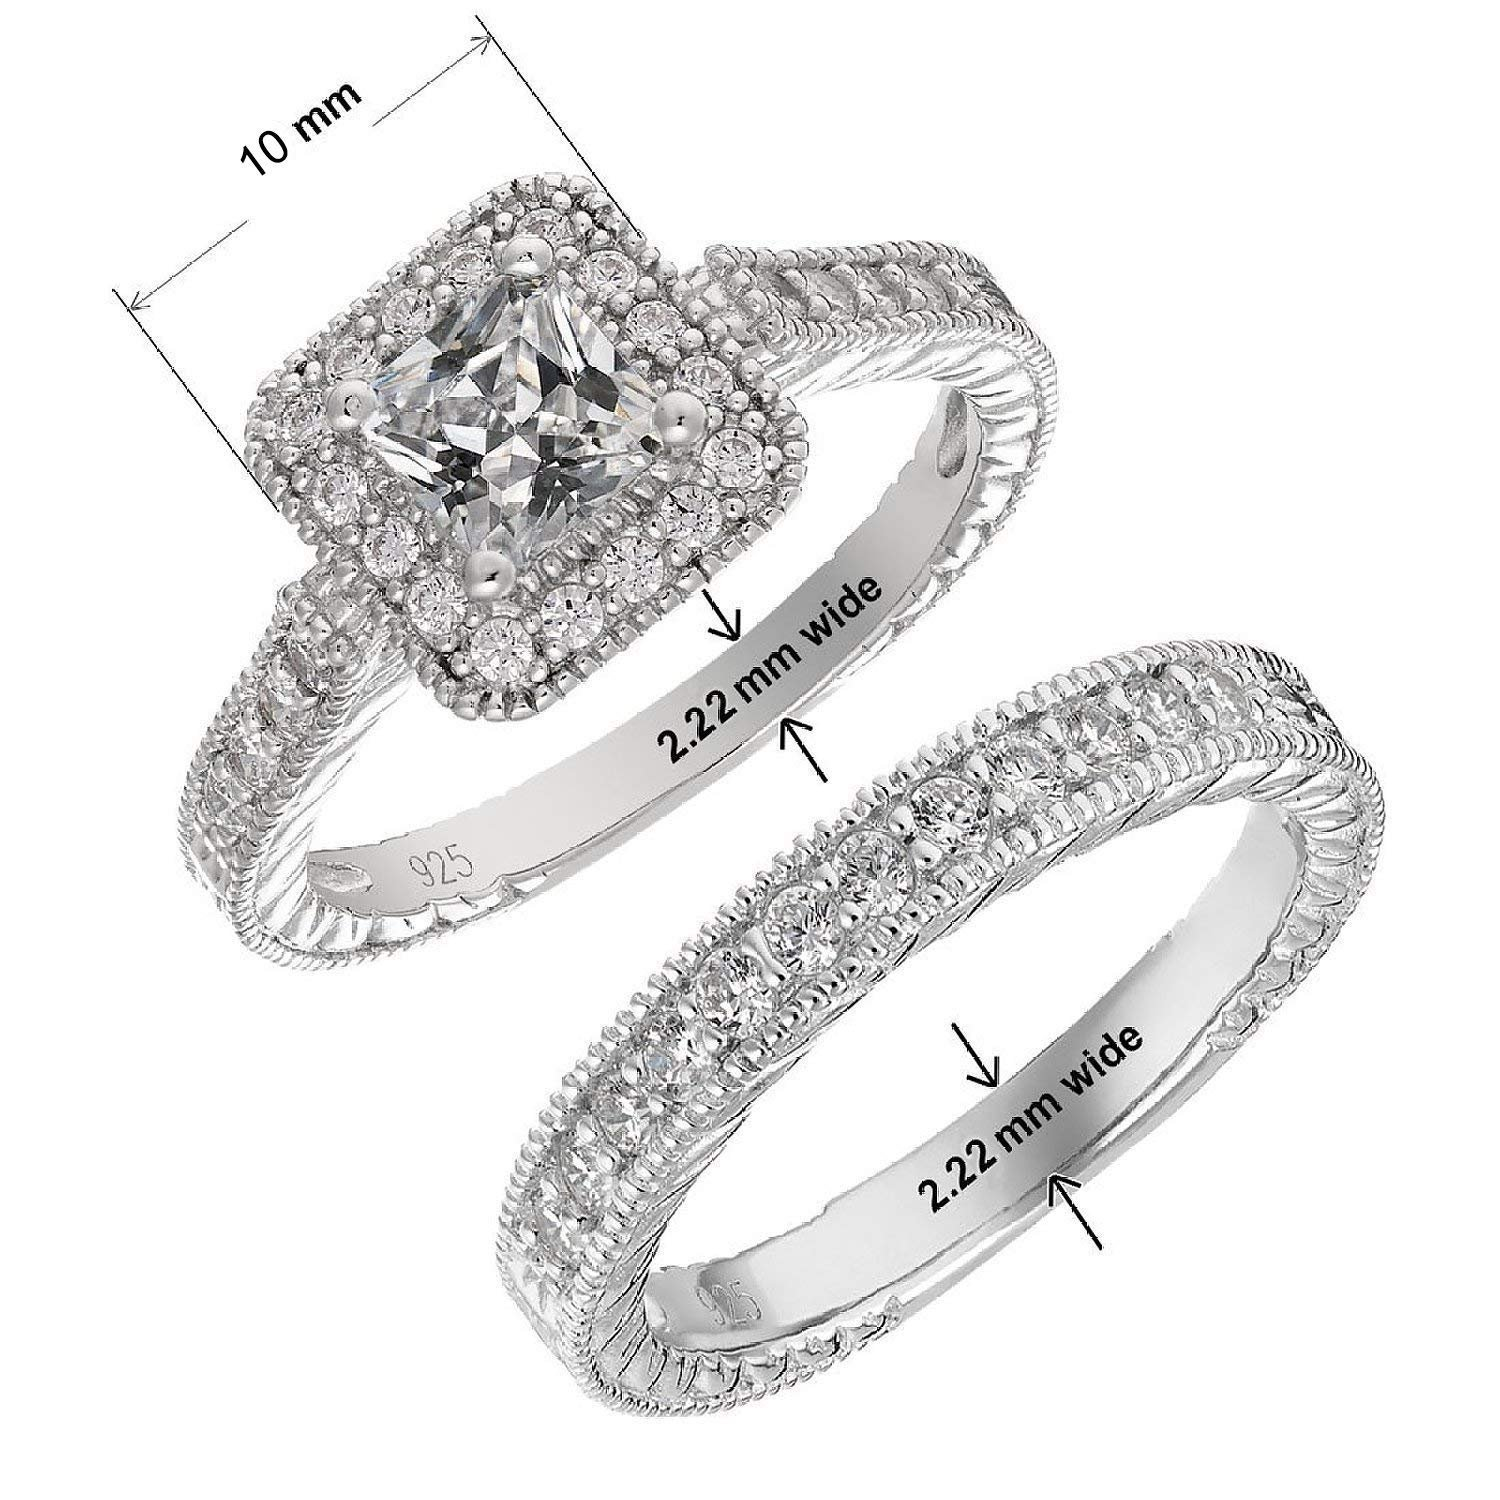 Panghoo Solid 925 Sterling Silver Cz Engagement Wedding Ring Set for Women